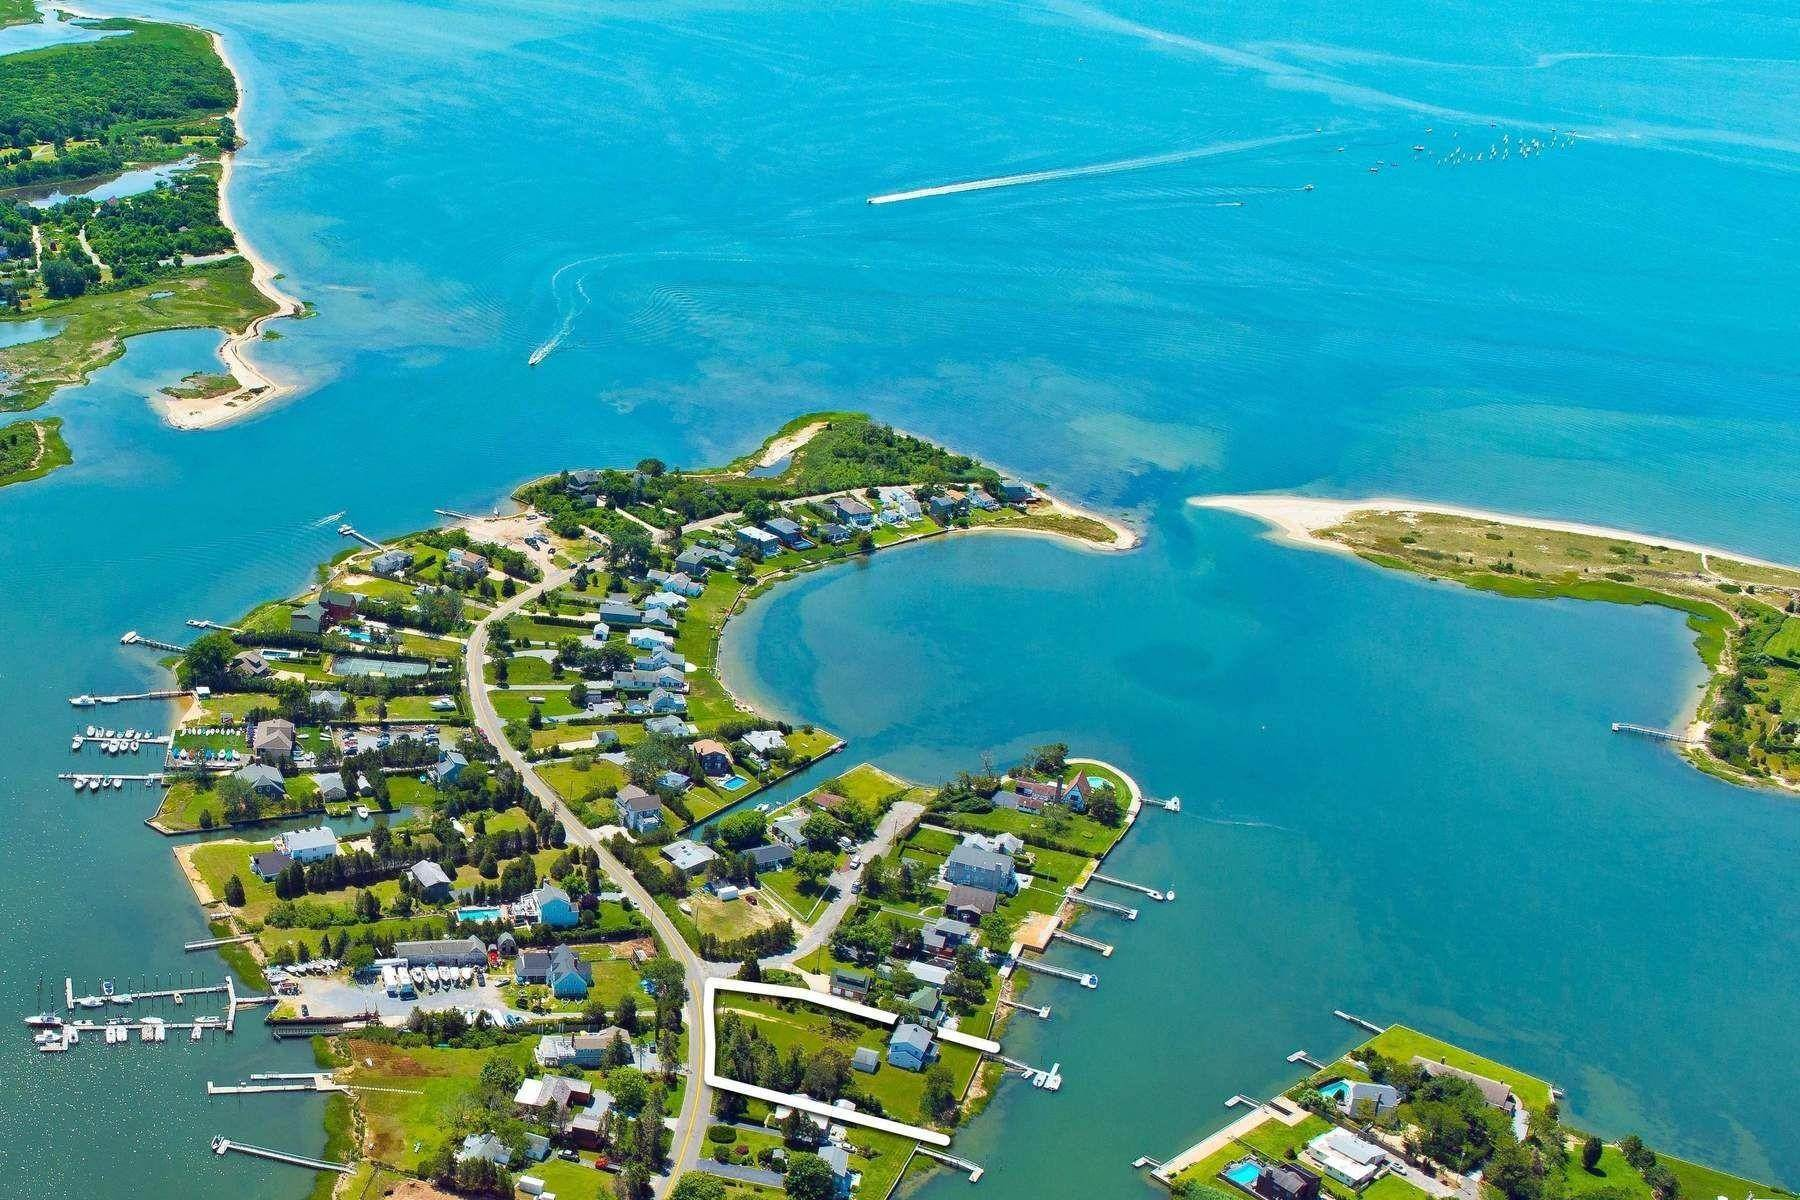 Single Family Home for Sale at Dream Home Opportunity On The Water 69 Little Neck Road, Southampton, NY 11932